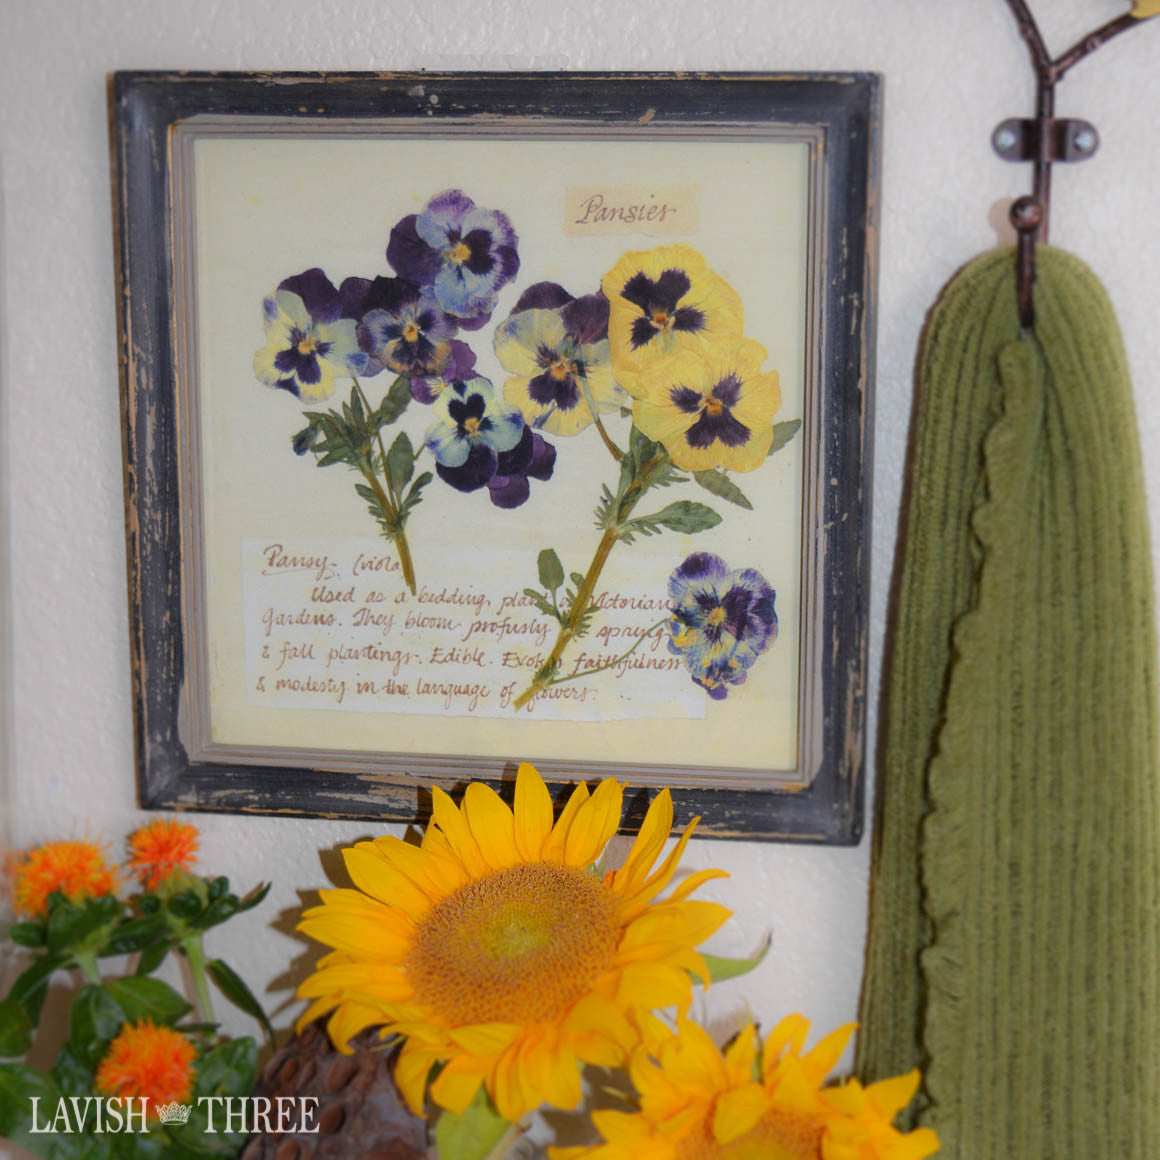 Perfect pansies flower botanical print wall art decor  in cottage chic frame